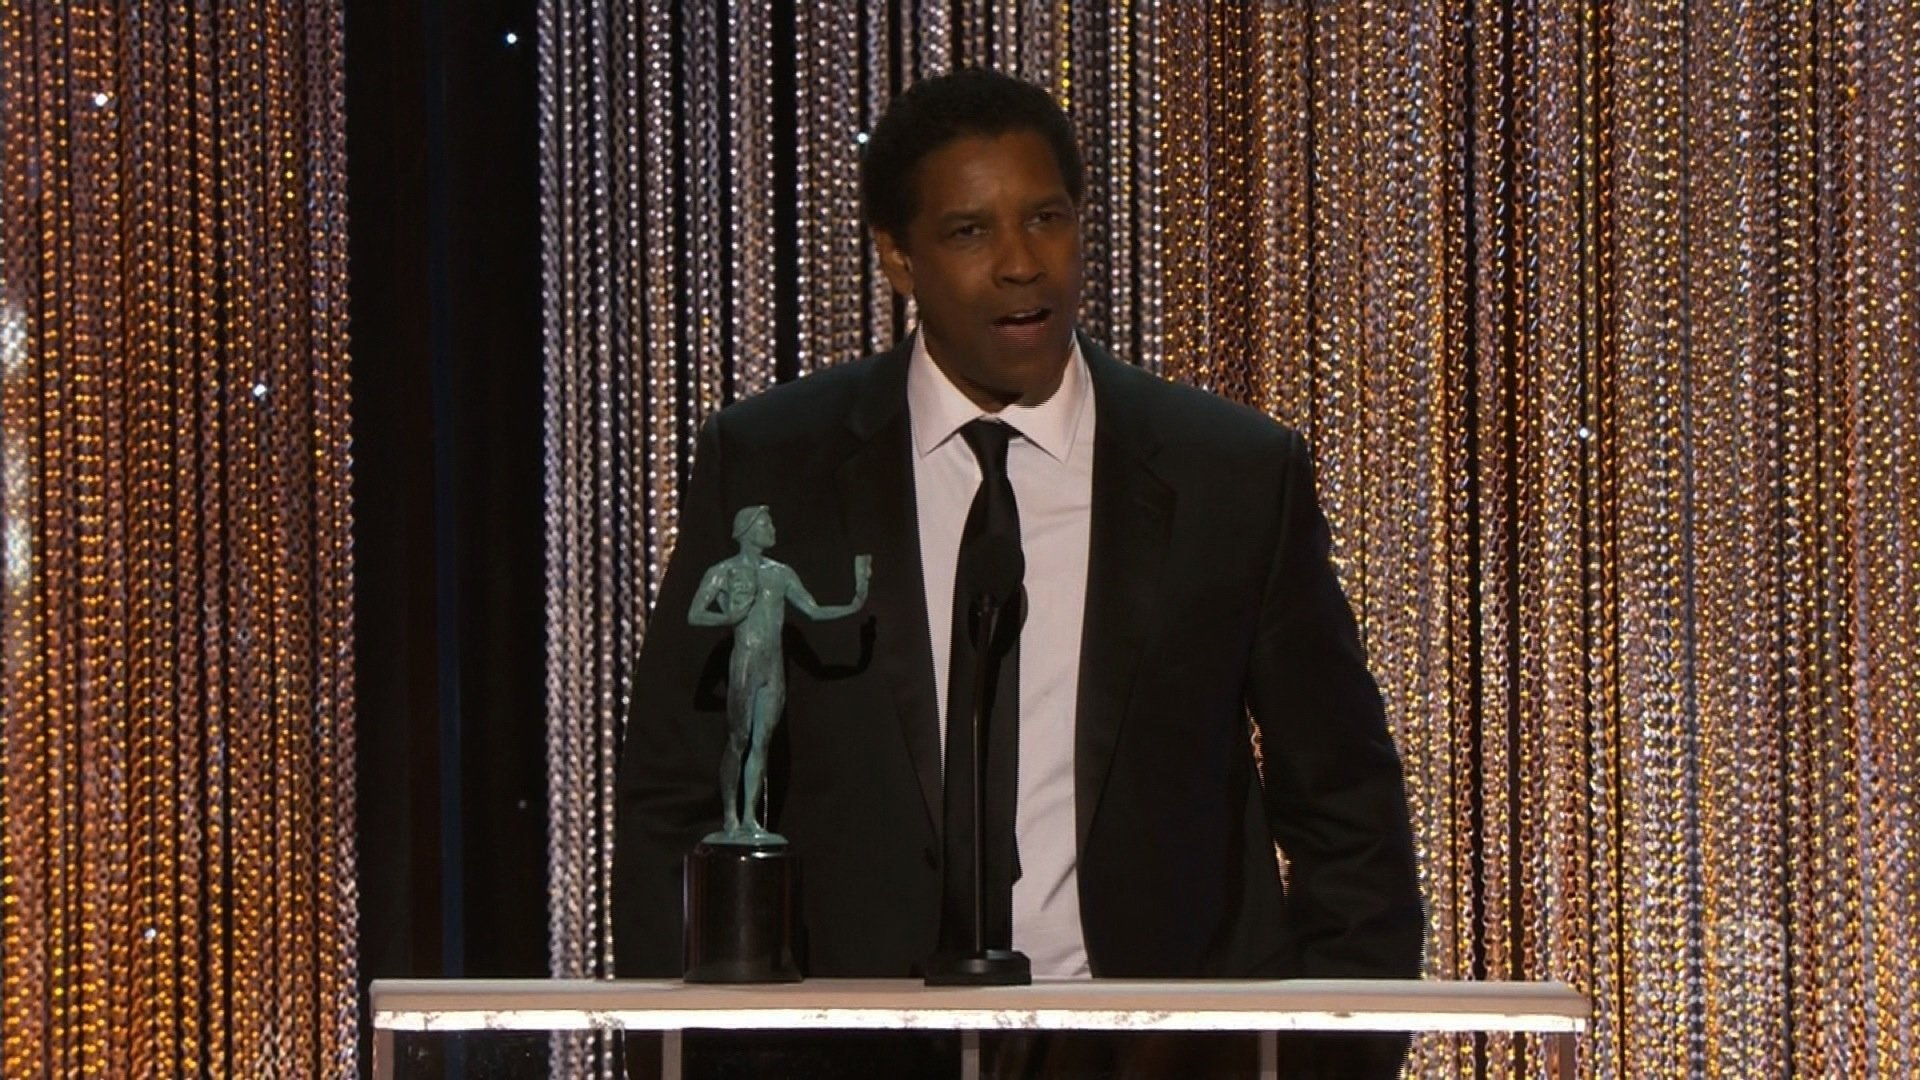 Actor Denzel Washington wins outstanding performance by an actor in a leading role at the 2017 SAG Awards